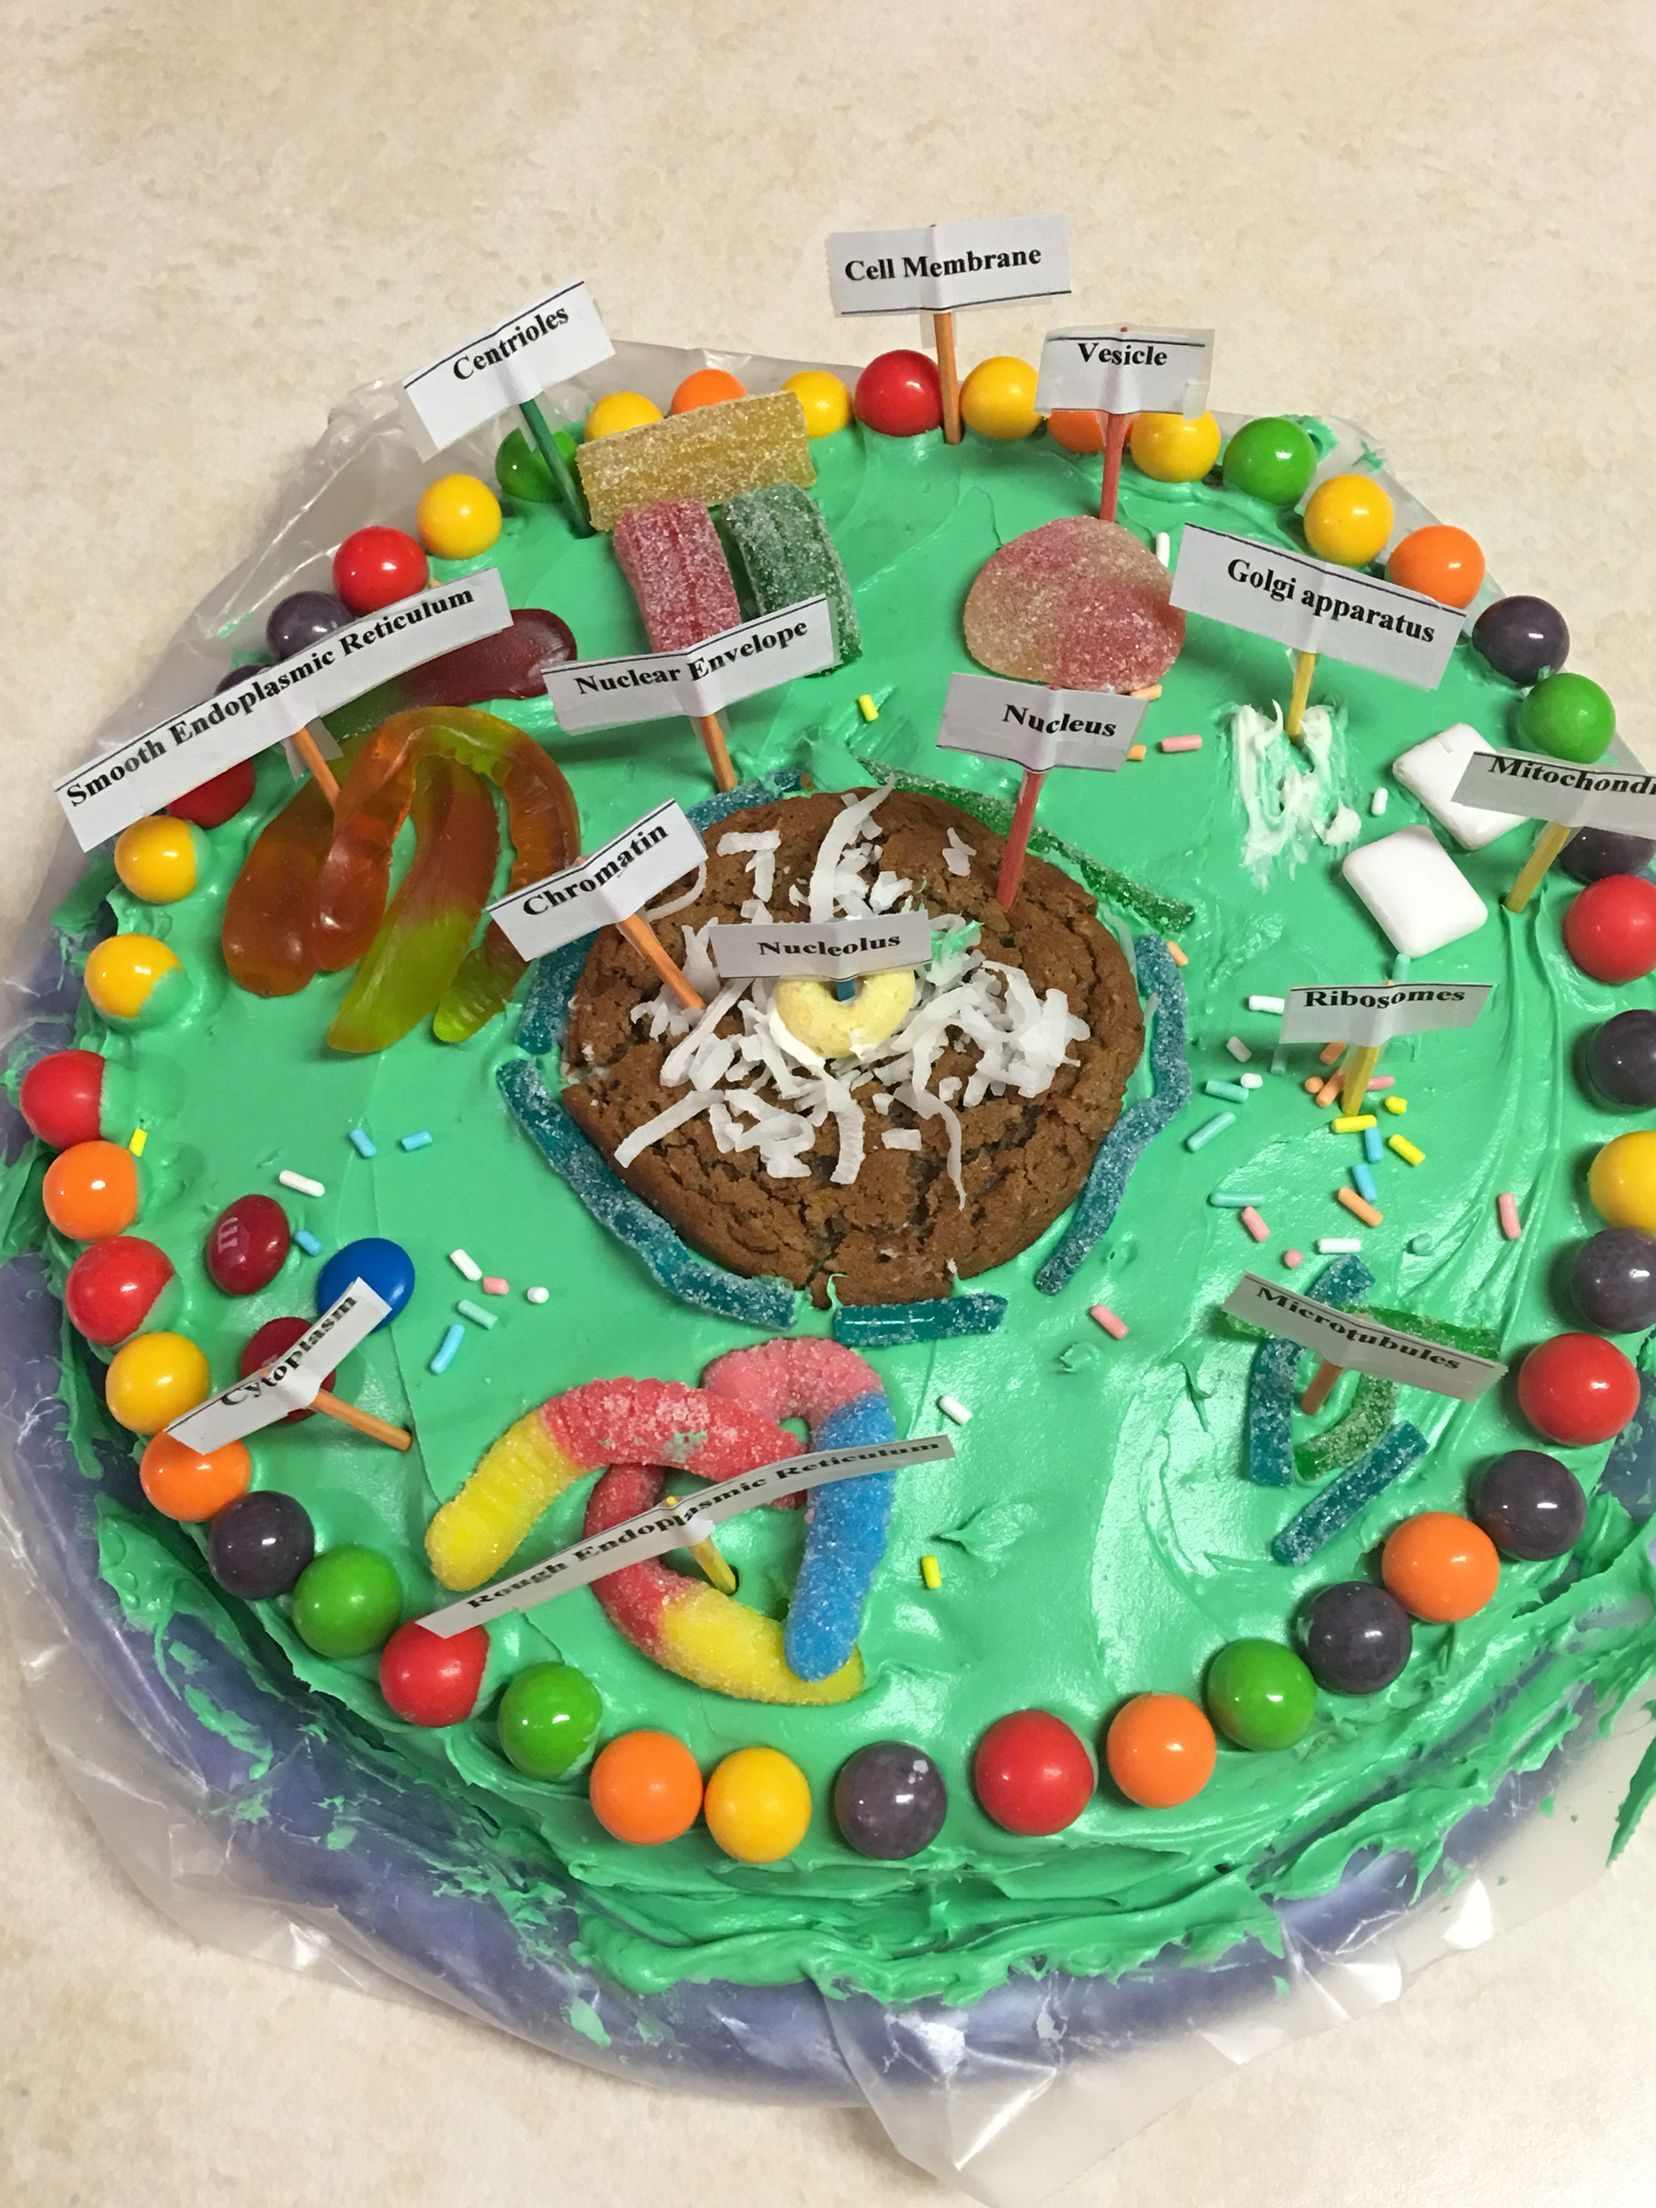 How to make an edible plant cell cake